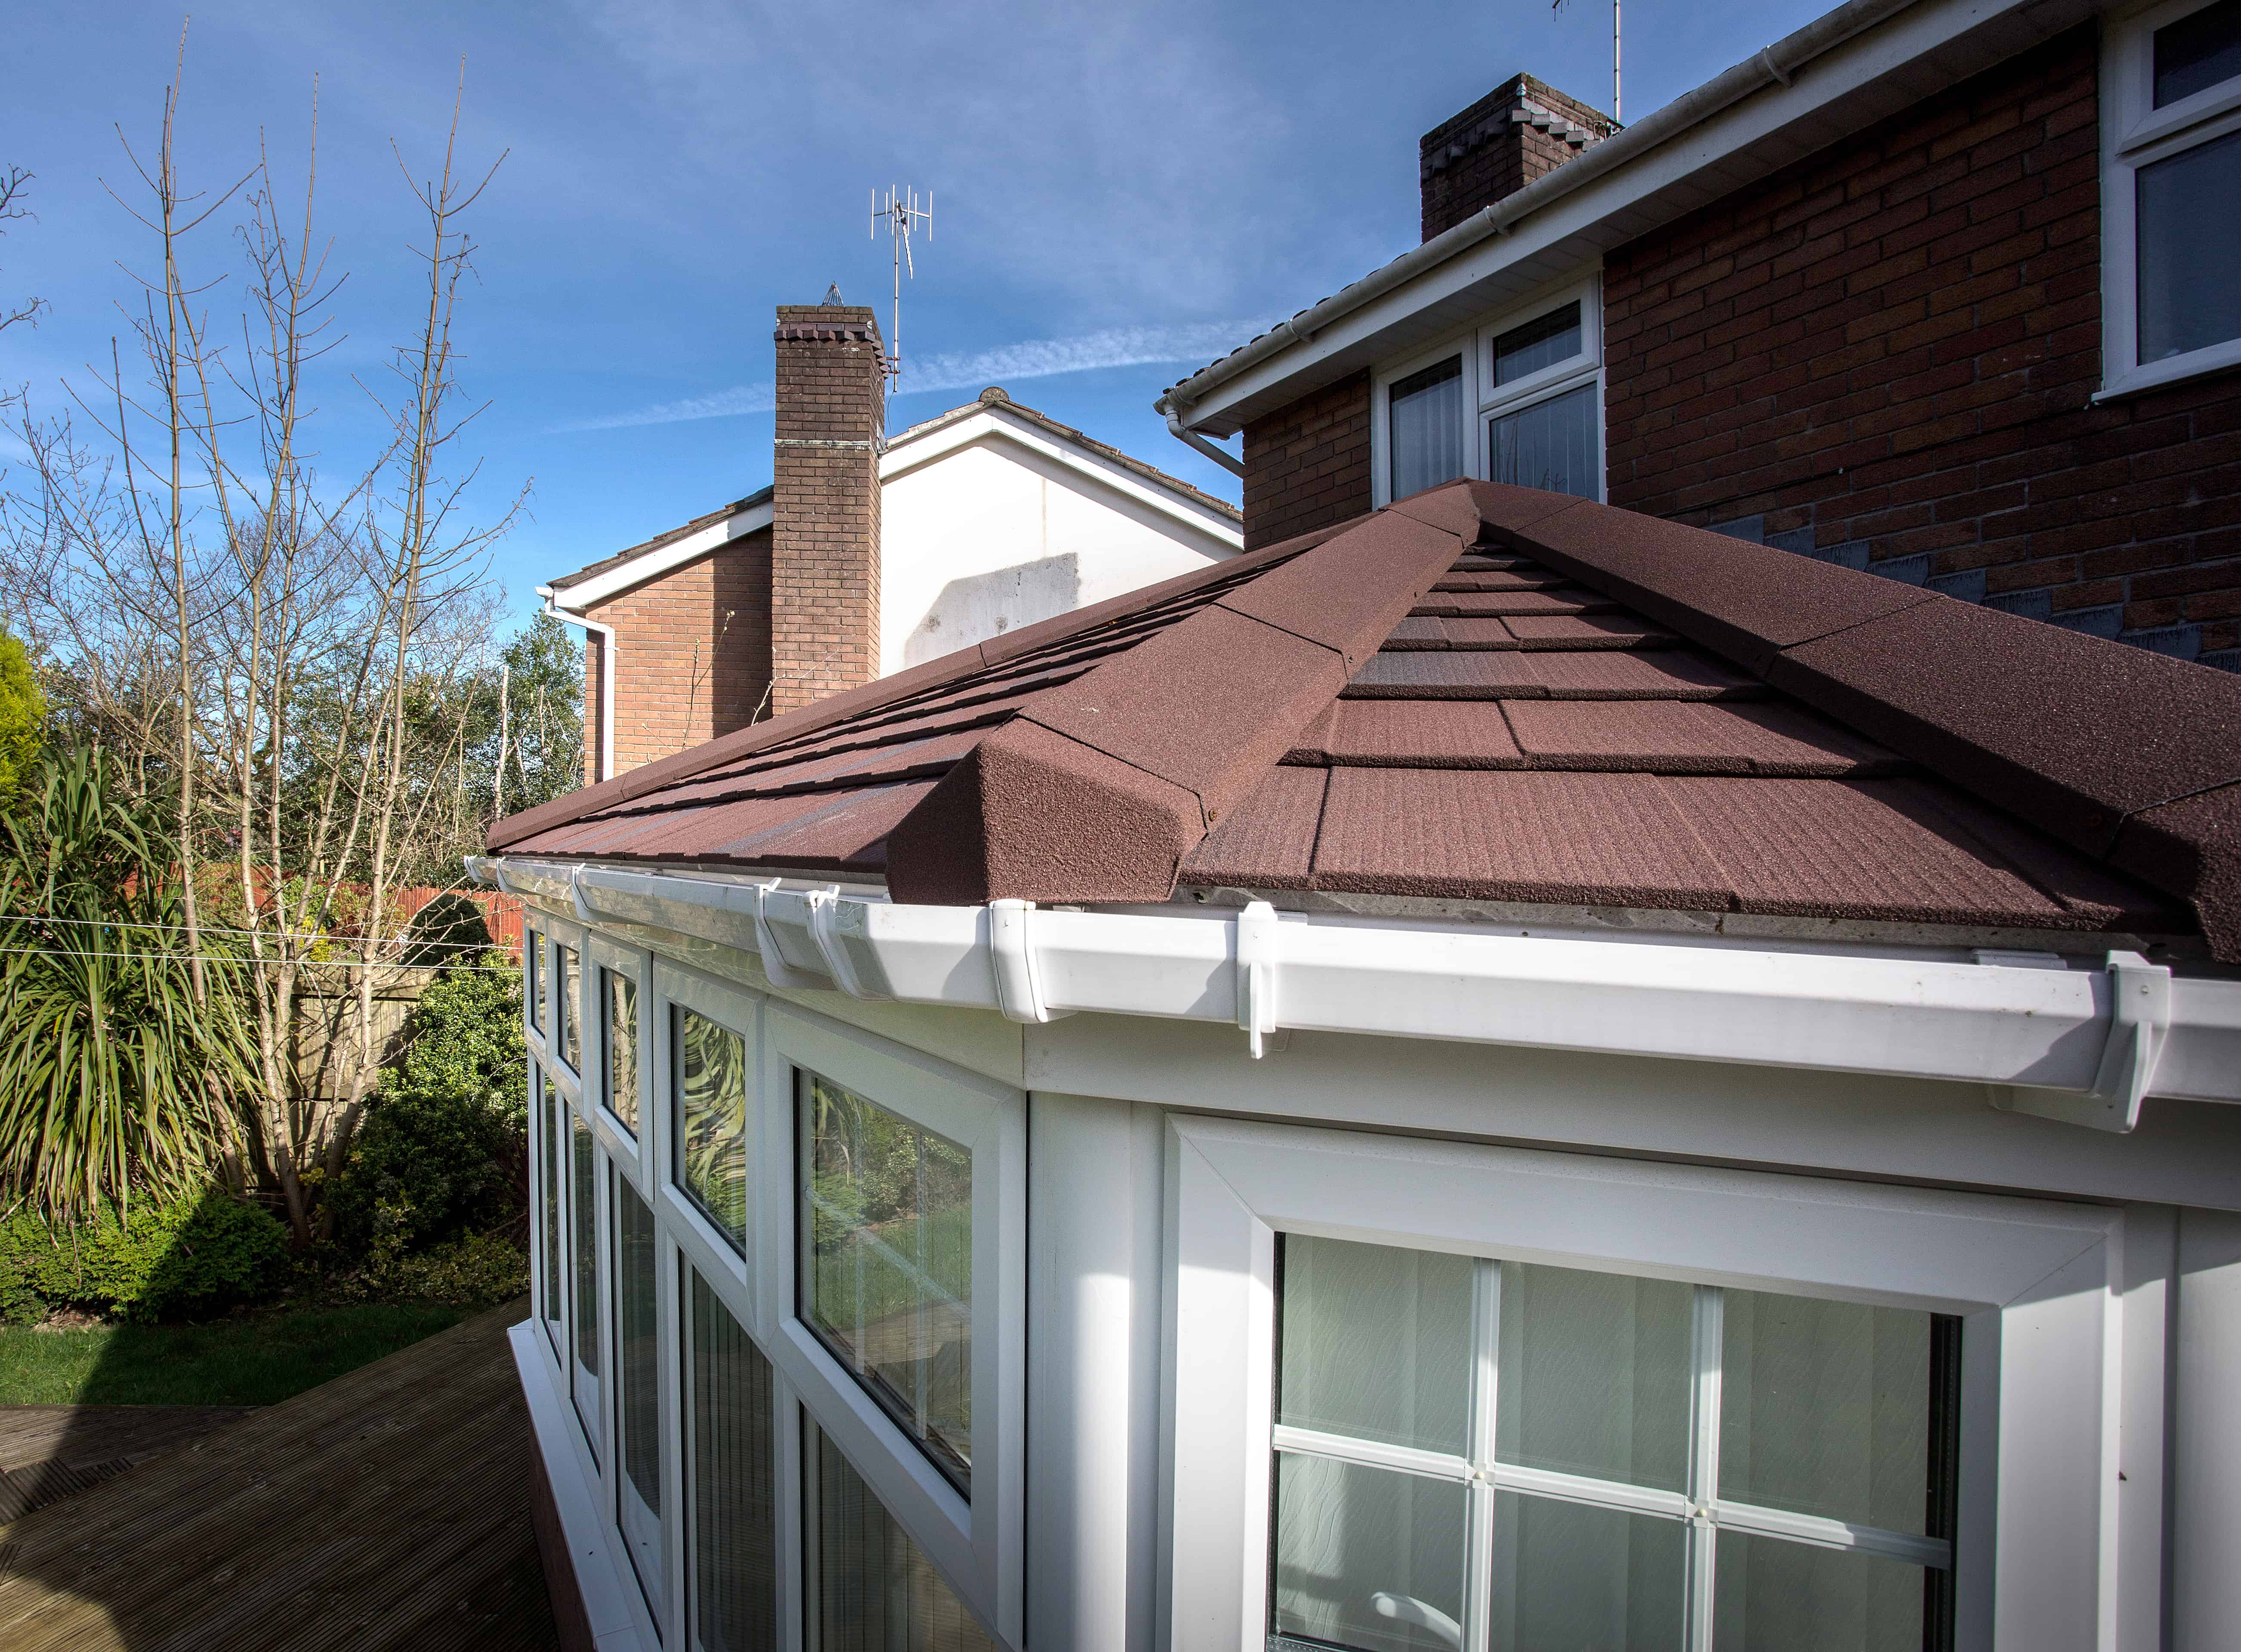 Conservatory solid tiled roof replacement